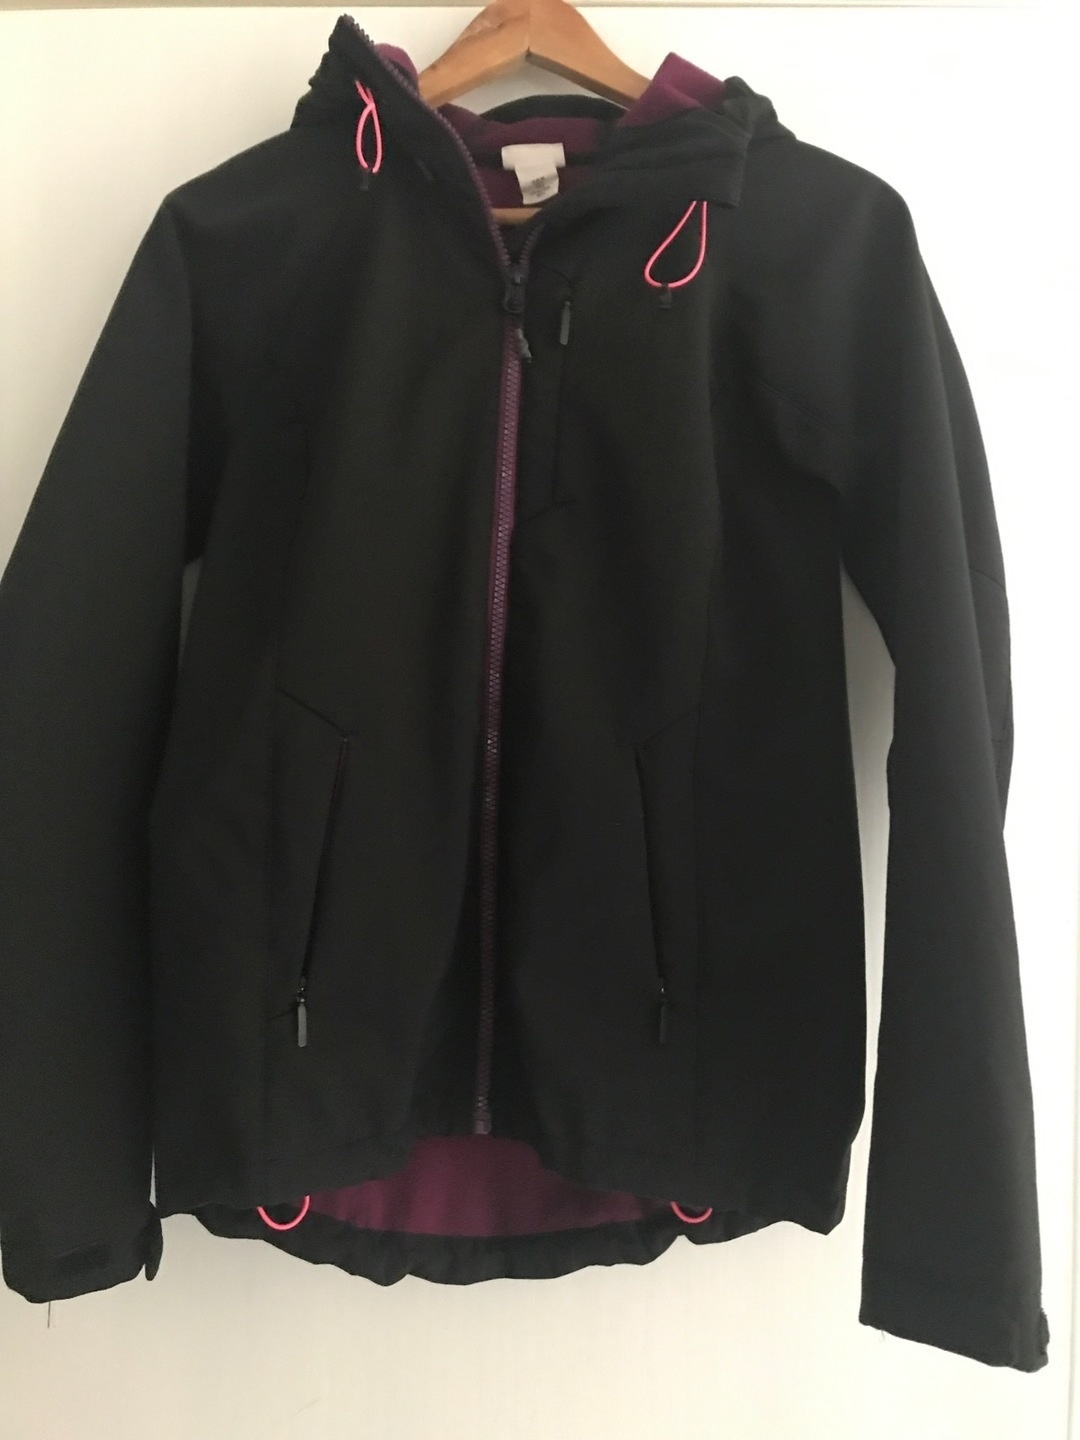 Women's coats & jackets - H&M photo 1